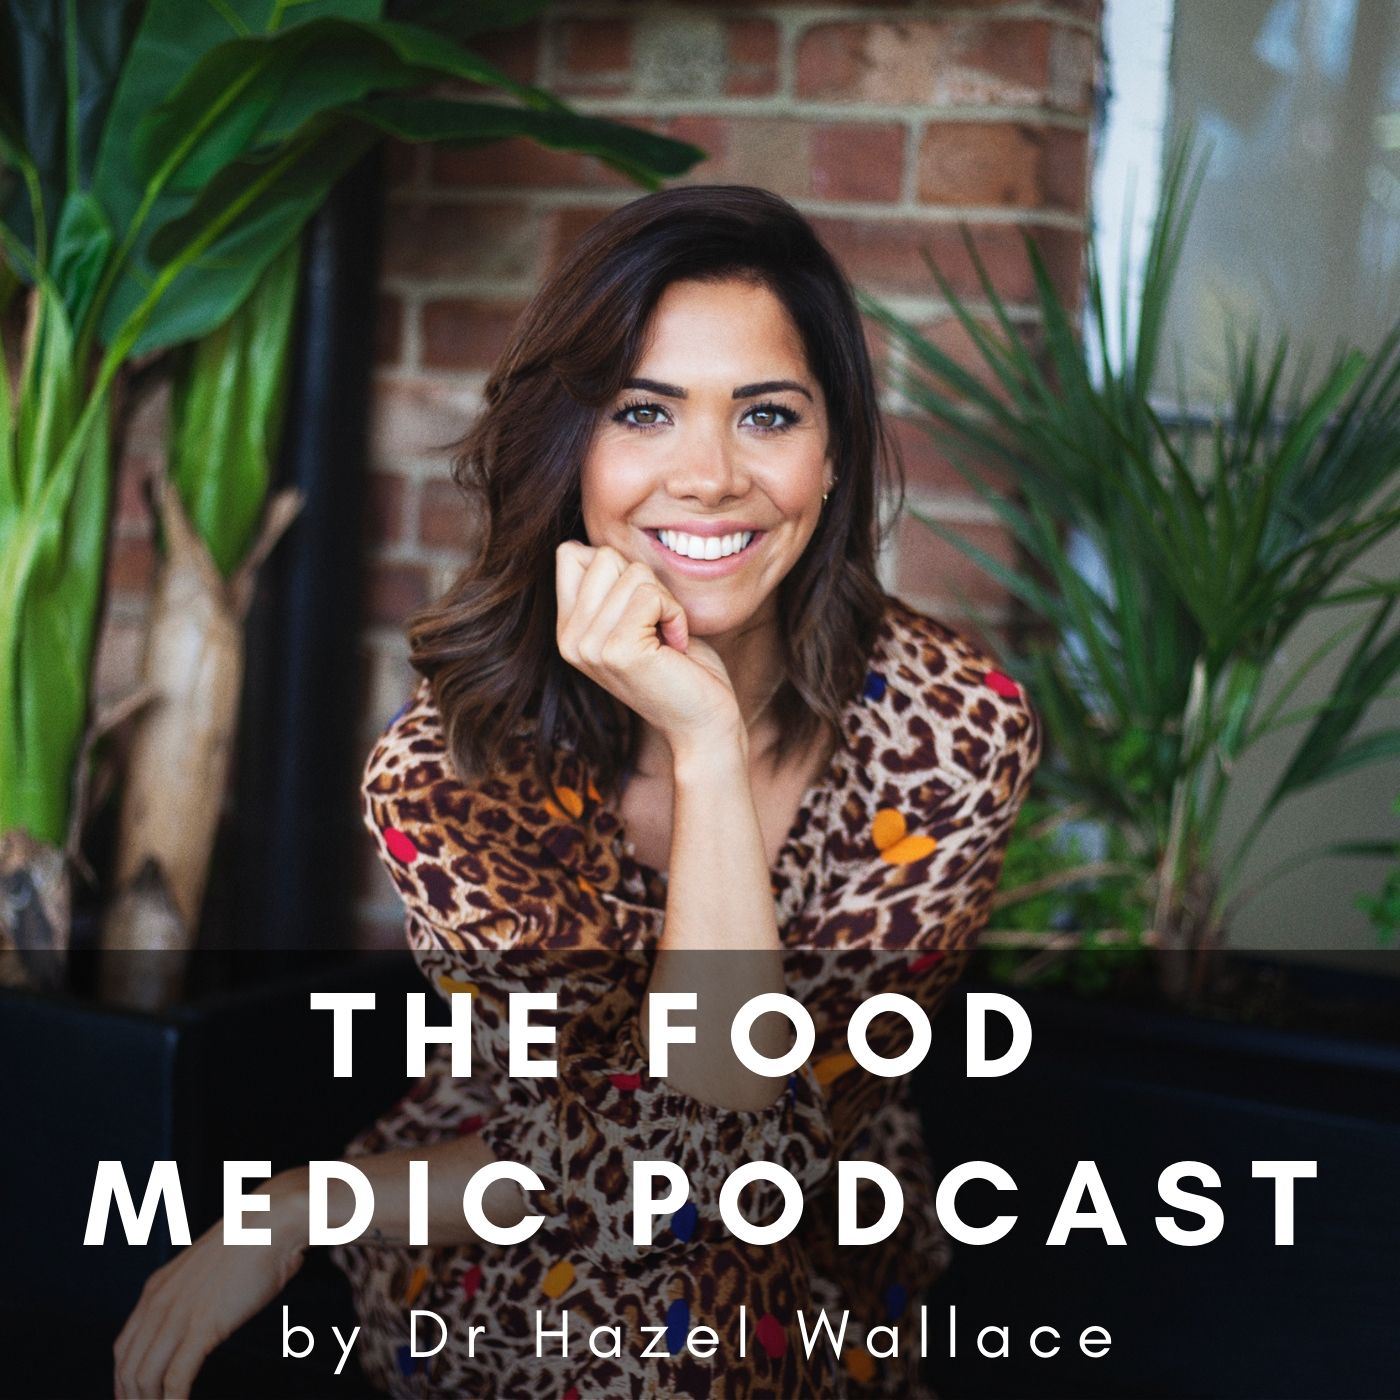 S1 E6 - Lifestyle medicine and the NHS